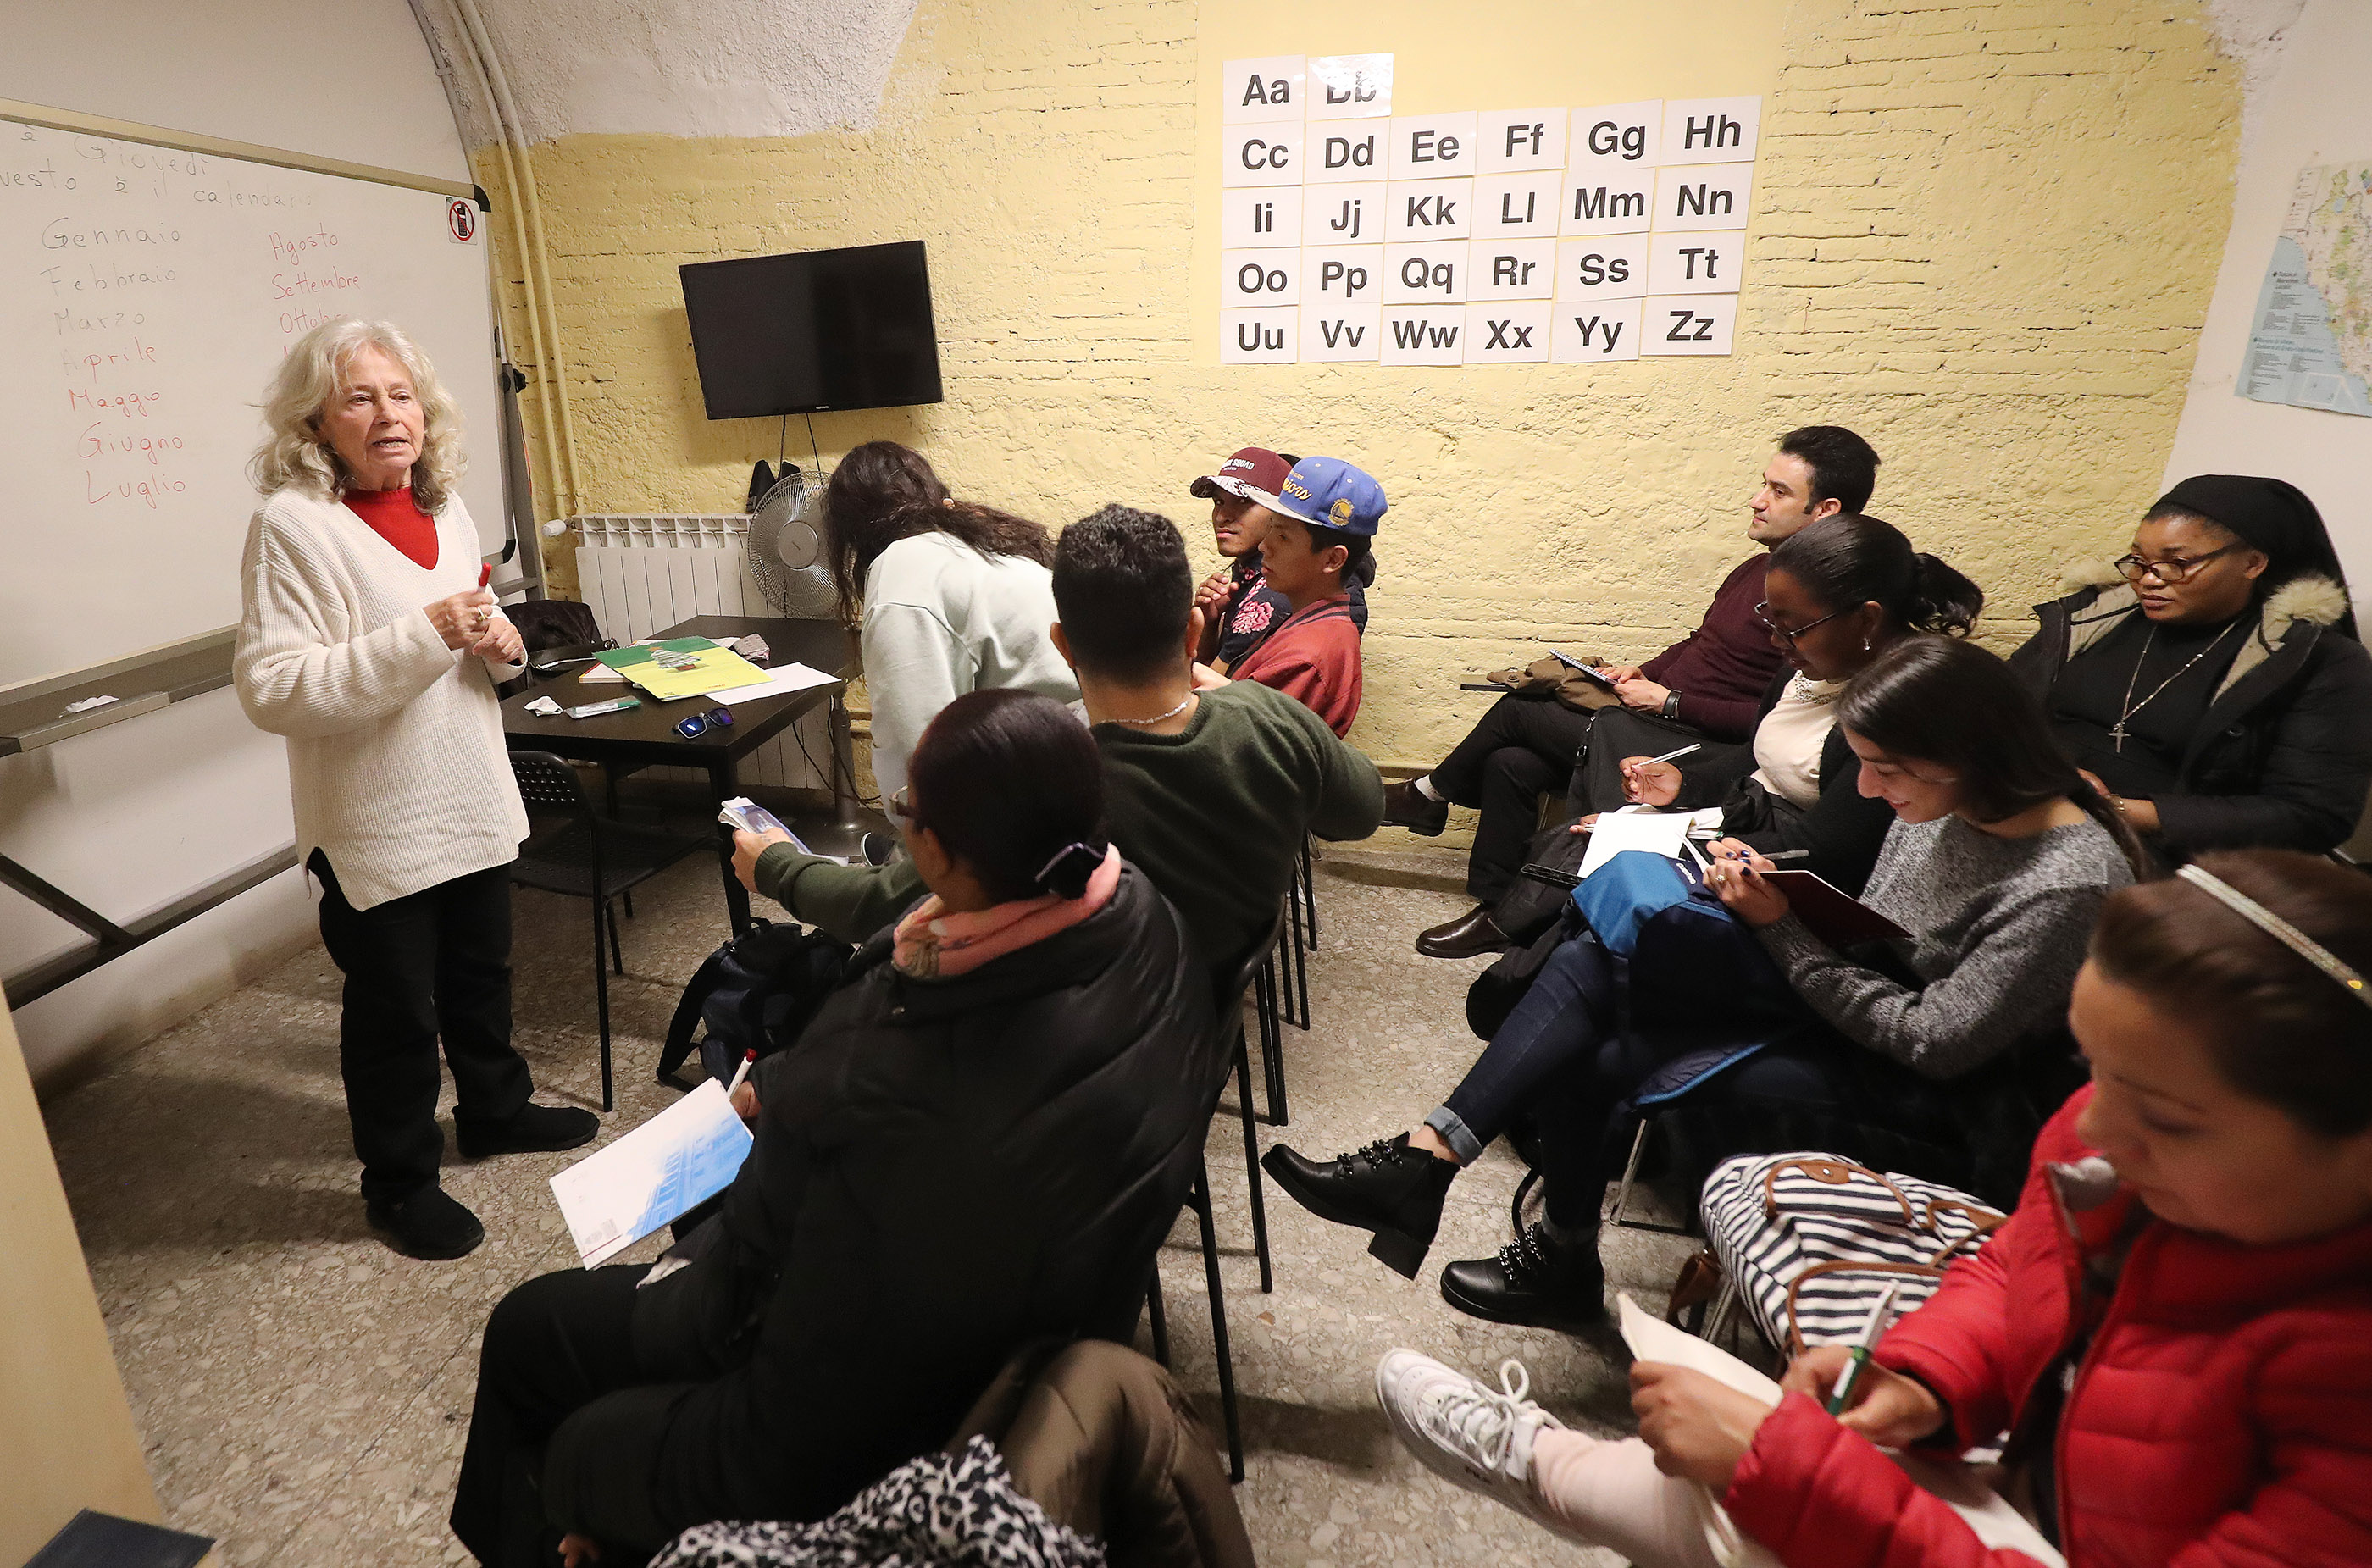 Latter-day Saint volunteer Cecilia Panecianco teaches English language class to refugees at St. Paul's Within the Walls Episcopal Church in Rome, Italy on Thursday, March 7, 2019. The Church of Jesus Christ of Latter-day Saints partners with the Catholic church to help refugees.